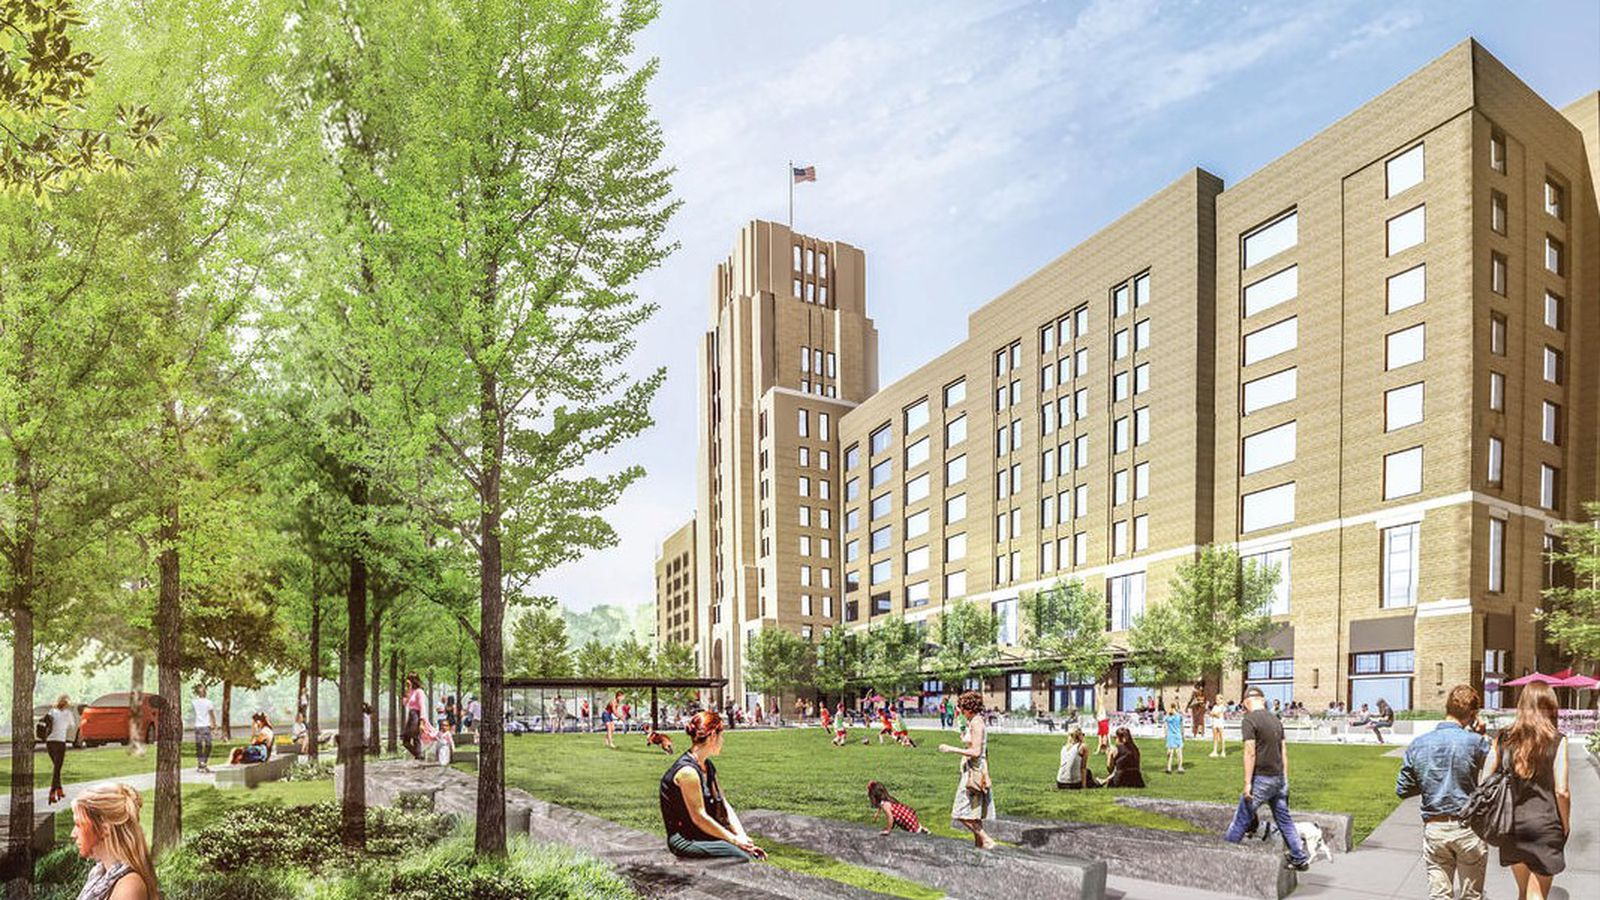 Landmark Center Expansion Will Likely Include New Park